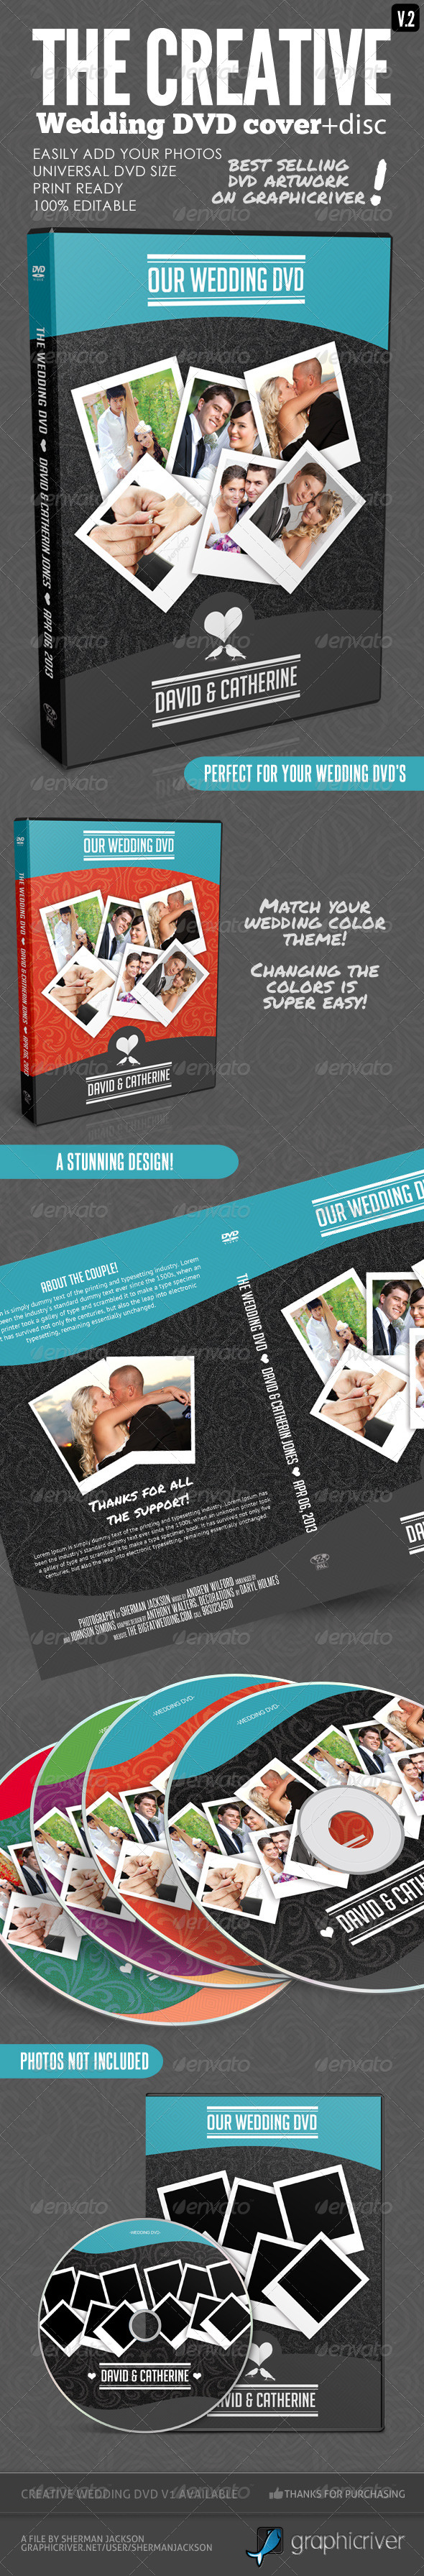 Creative Wedding DVD Covers & Disc Label V.2 - CD & DVD Artwork Print Templates